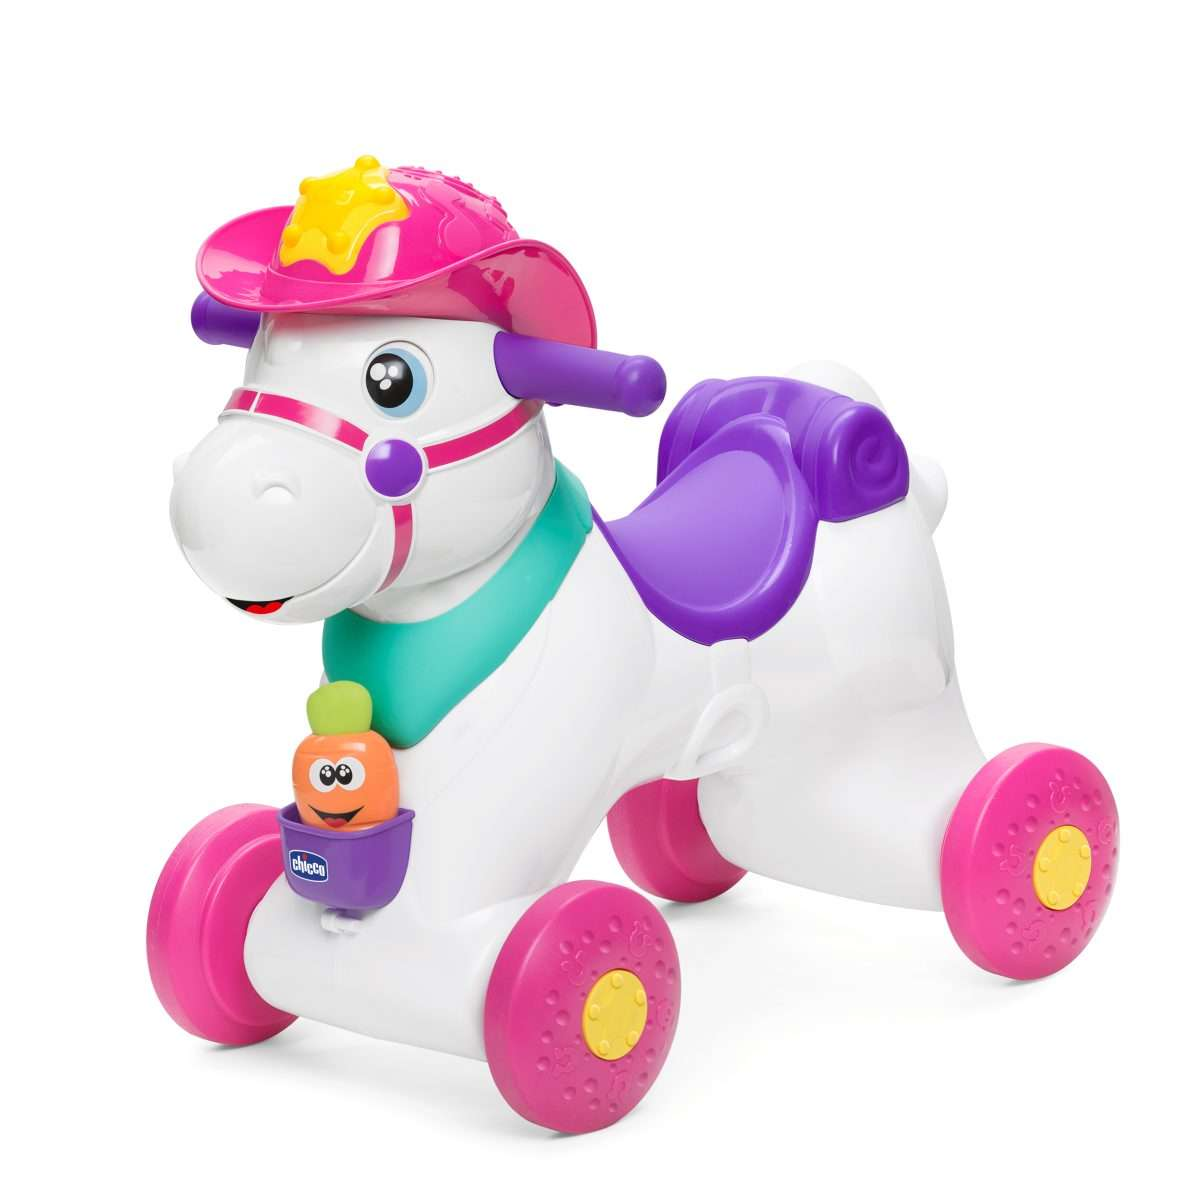 Porteur Miss Rodeo | Jouets | Chicco.fr